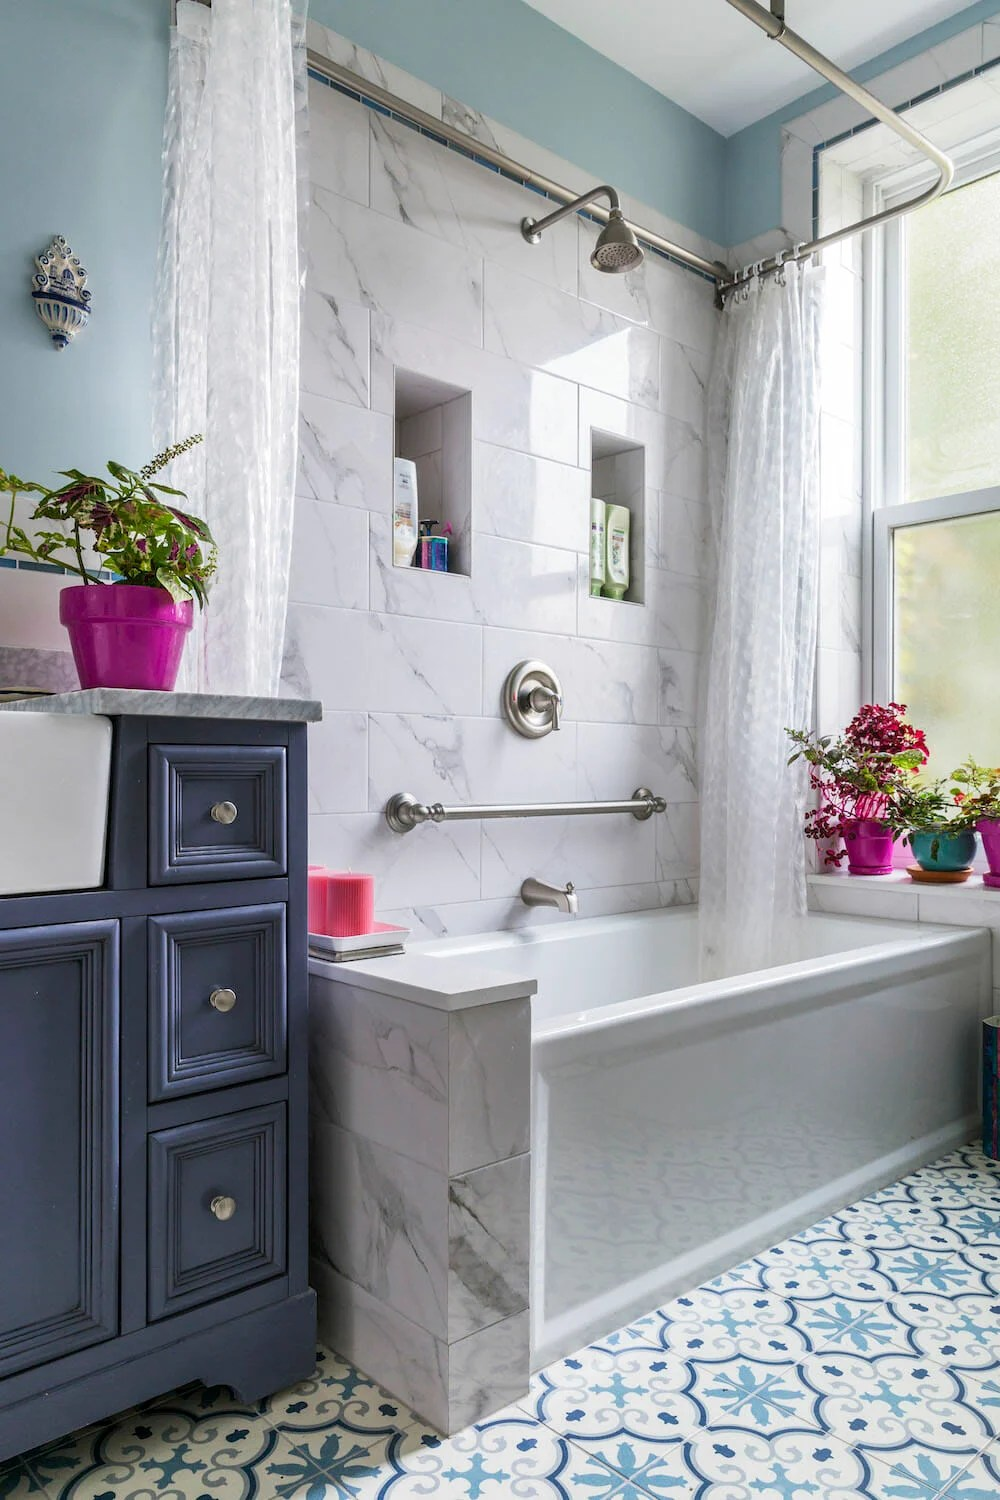 Clever Bathroom Storage Ideas That Go One Step Further